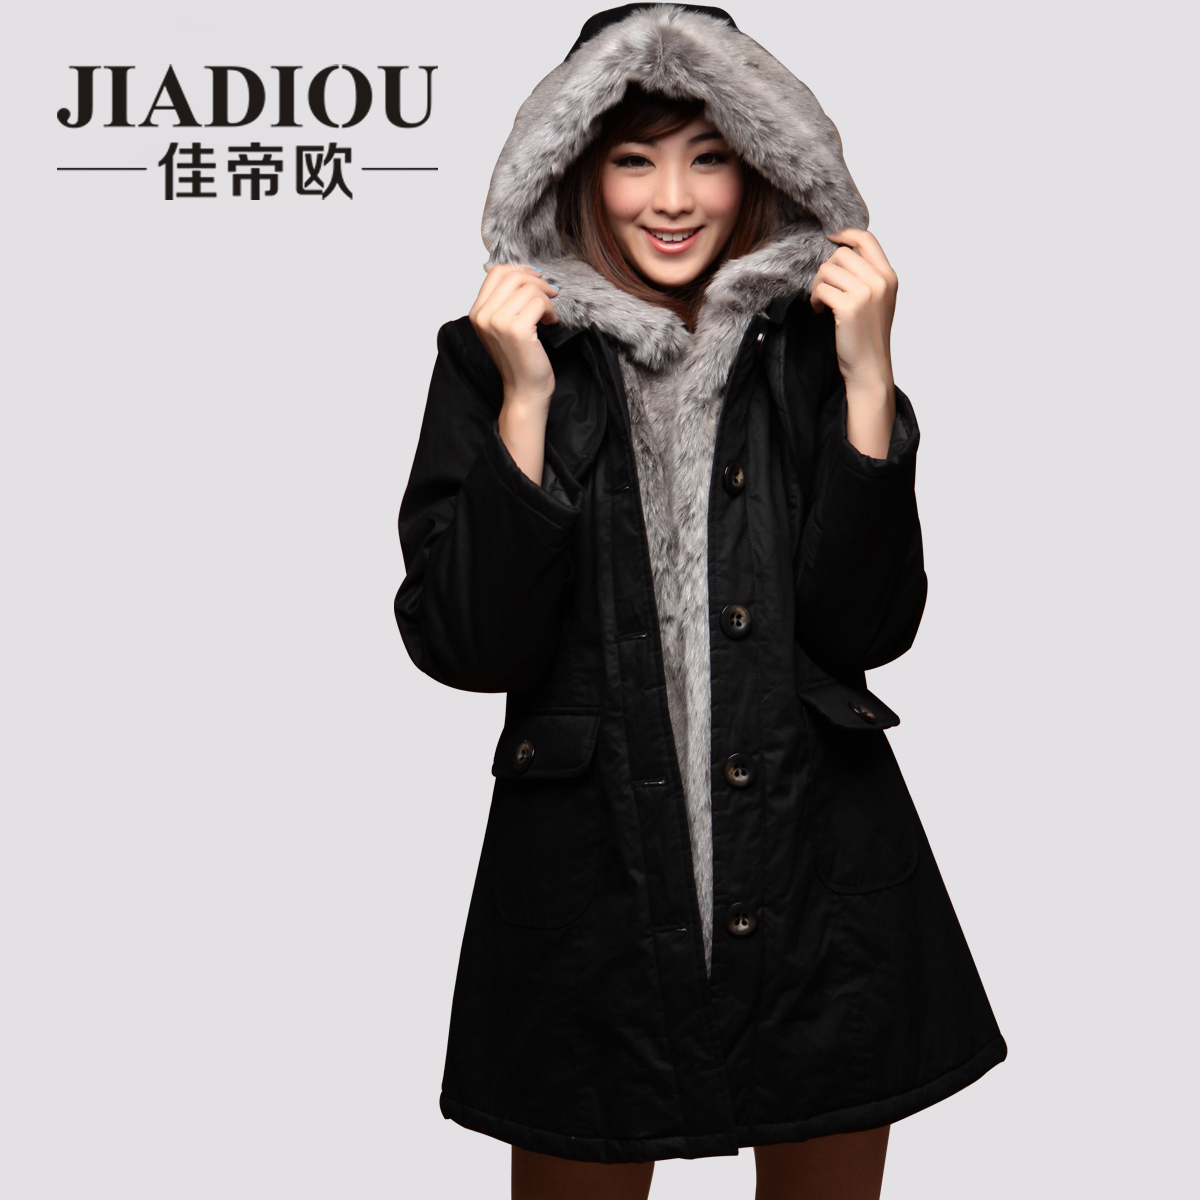 New 2014 Women Luxury Large Faux Fox Fur Collar Hood Wadded Jacket Winter Thick Warm Long Slim Cotton-Padded Jacket Xxxl D2586 2013 women autumn winter fashion candy color faux wool fur collar hood slim long thick cotton padded coatm l xl d2151